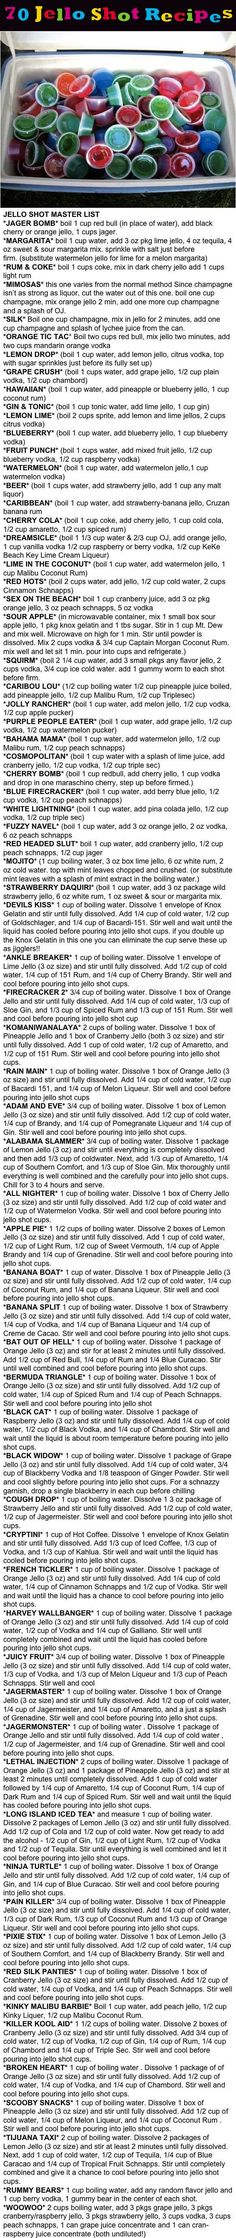 70 Jello Shot Recipes Pictures, Photos, and Images for Facebook, Tumblr, Pinterest, and Twitter